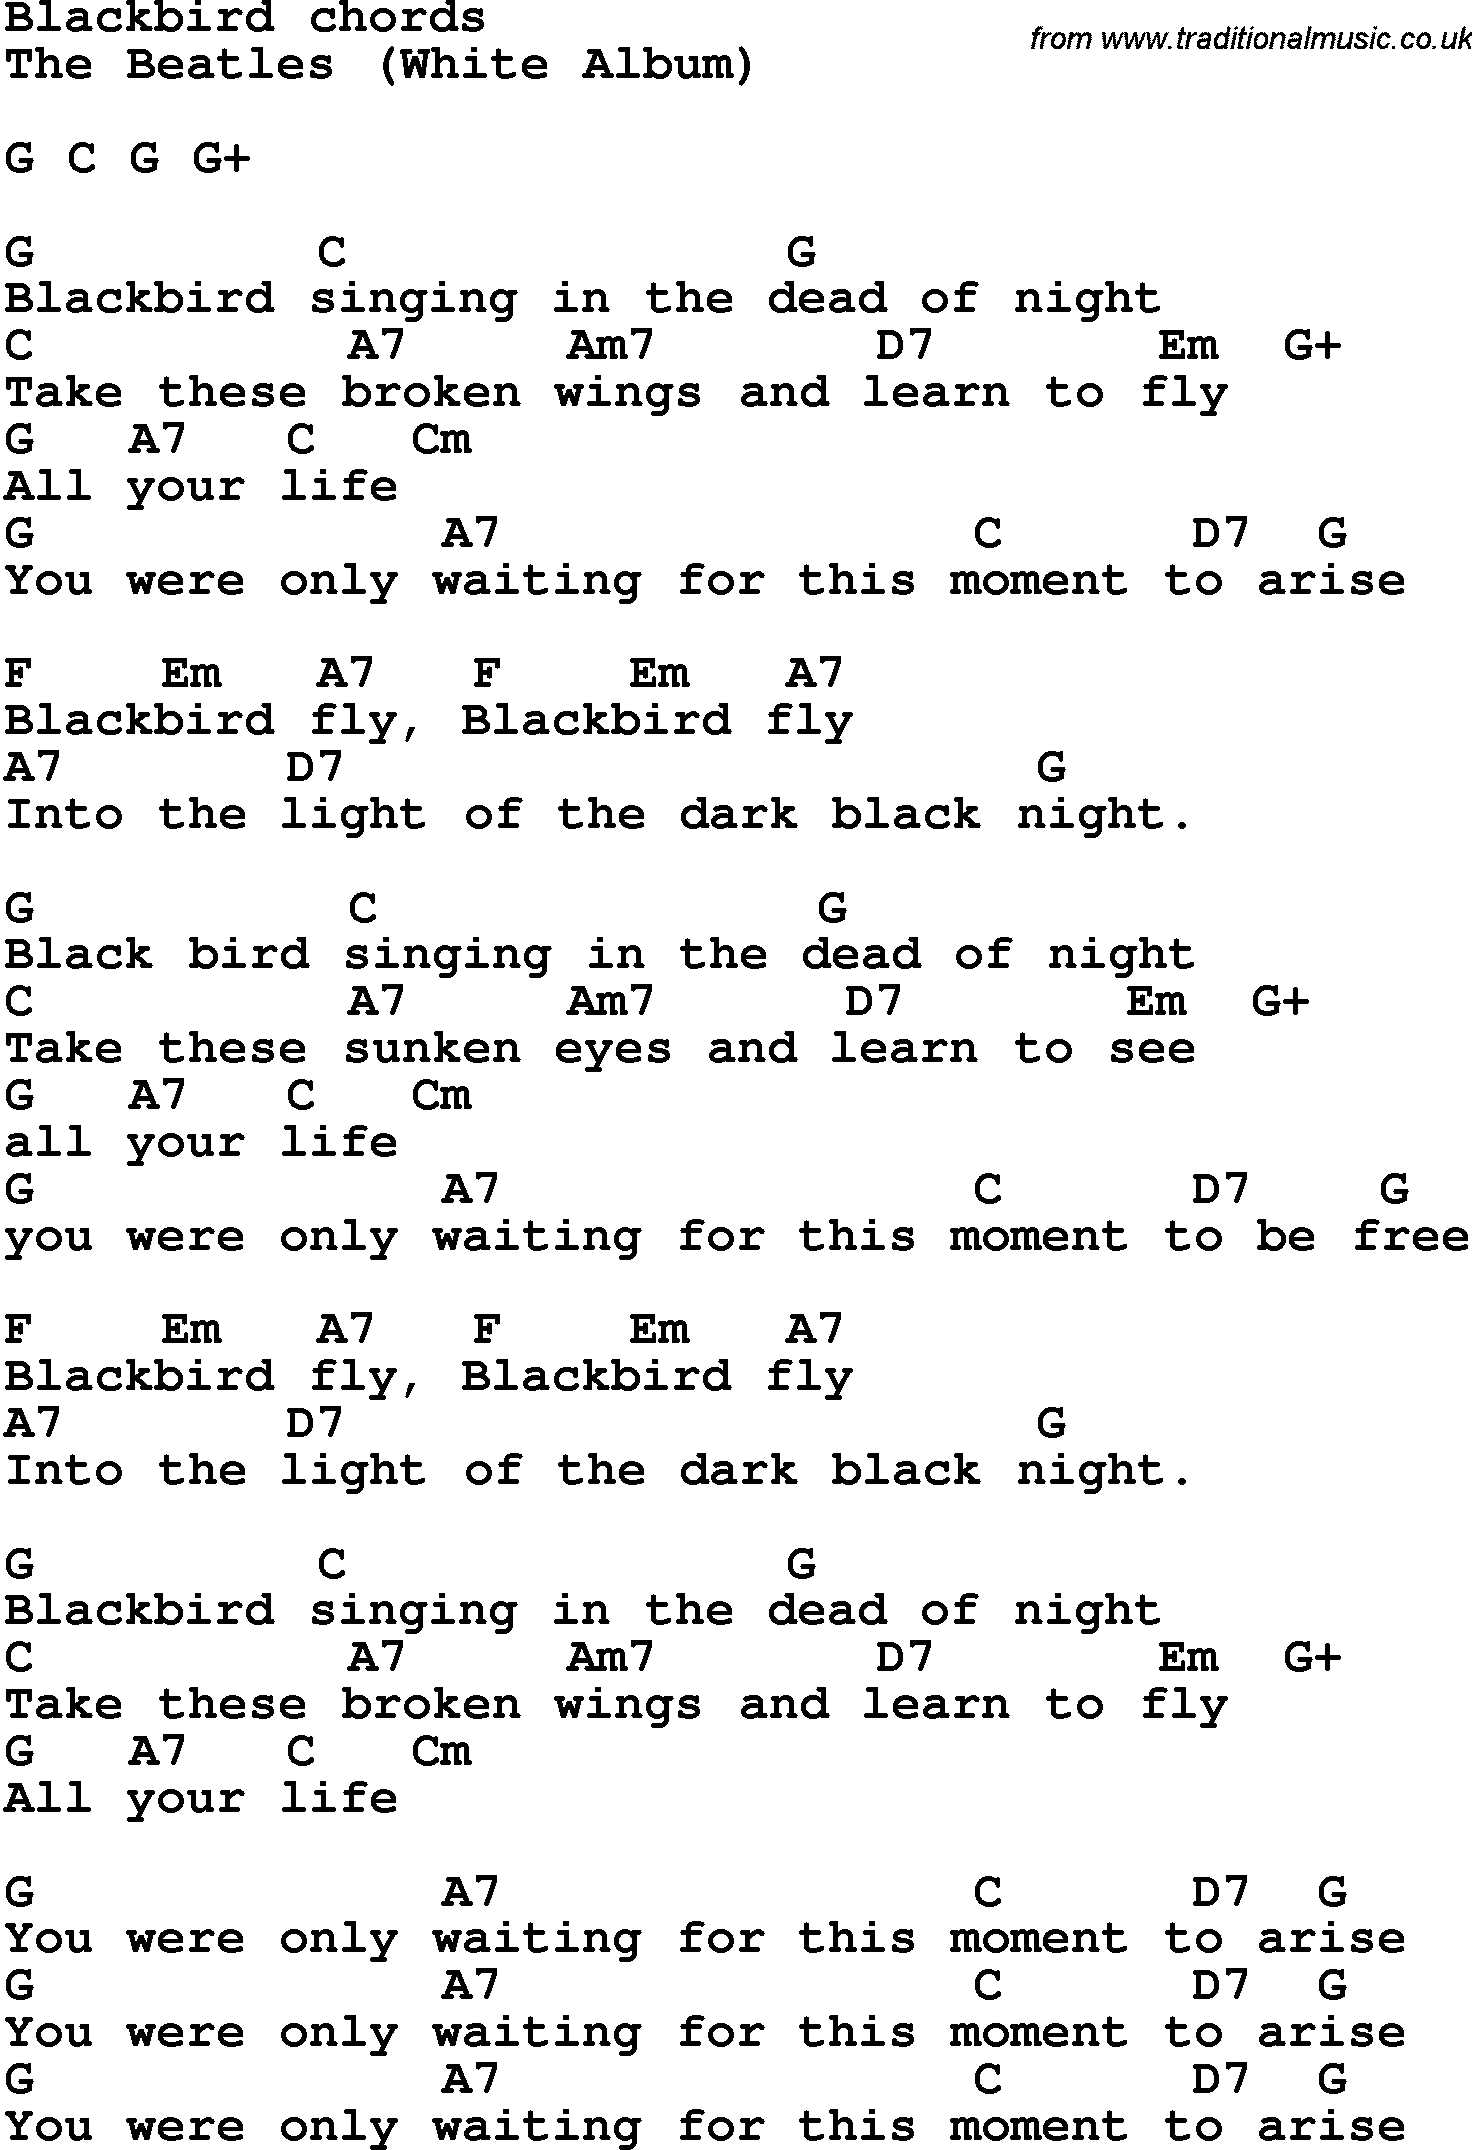 Black Bird By The Beatles Tabs Download Full Song As Pdf File For